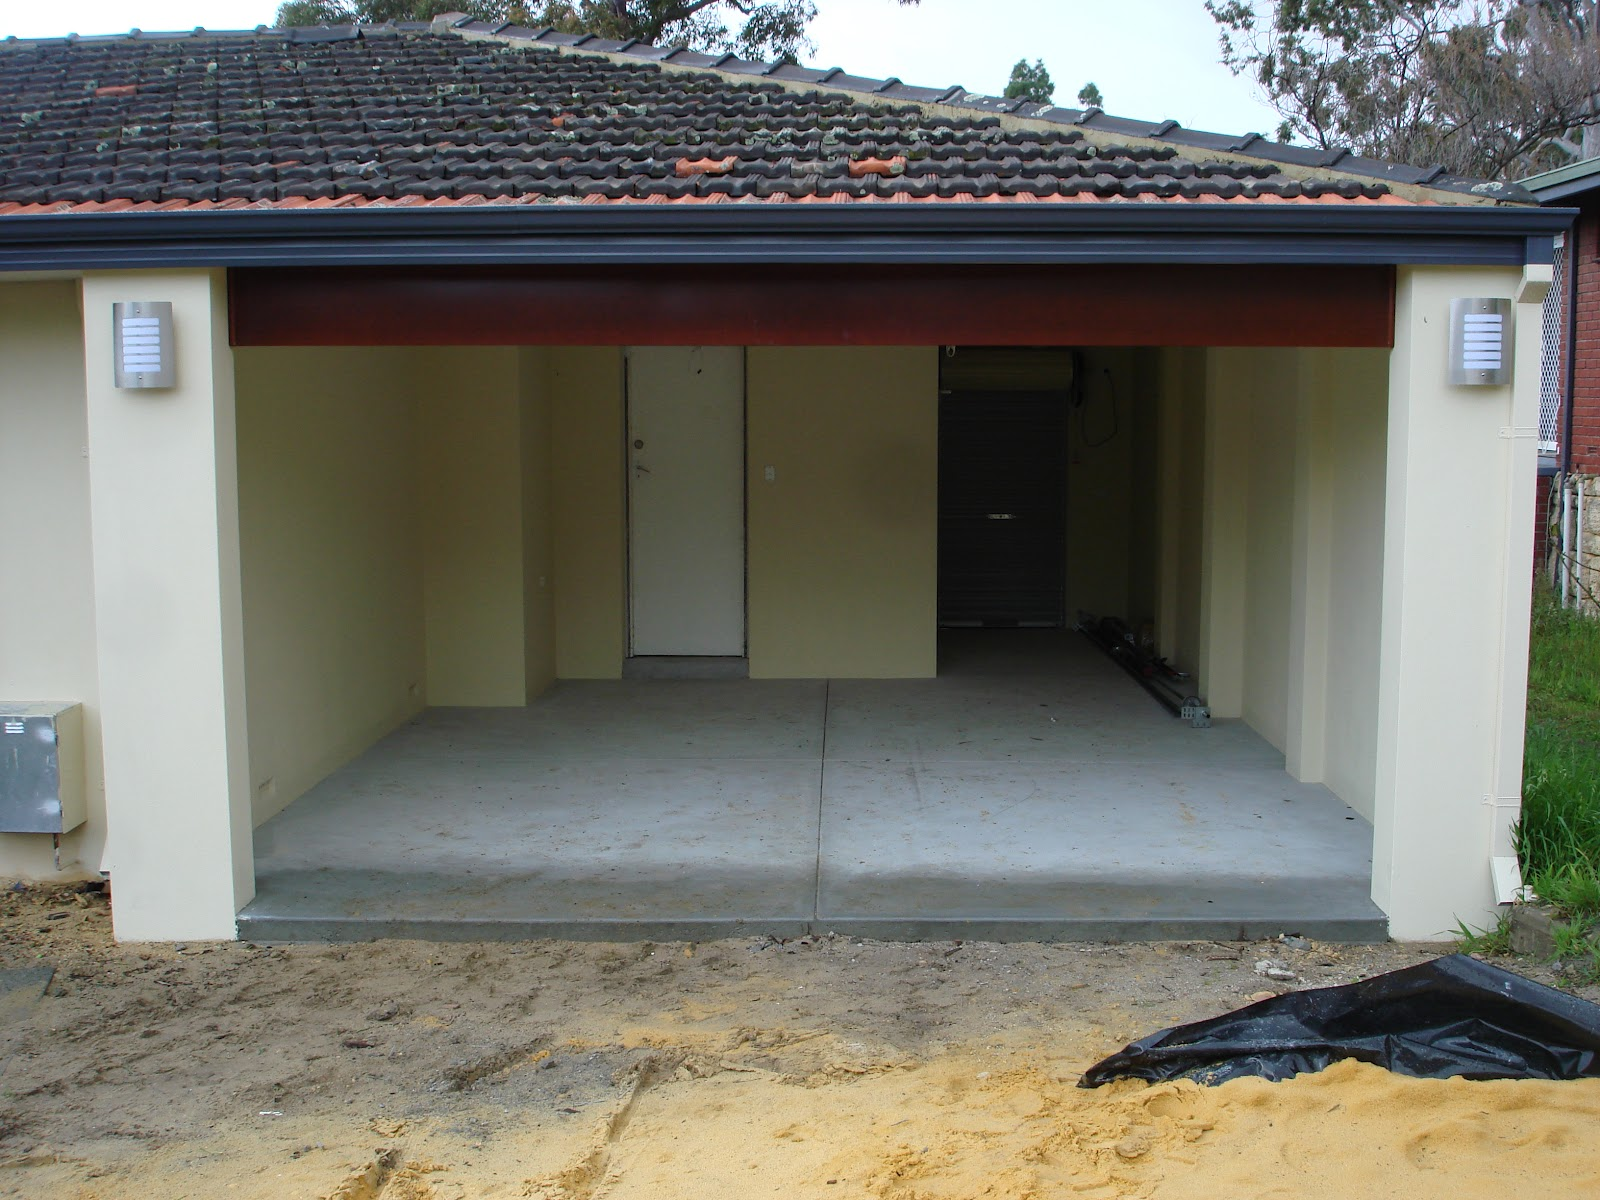 Jarrah jungle the garage doors are the icing on the cake the pelmet wasnt installed flush against the ceiling either so we asked him to fix that as well which he did after a little convincing when he came back rubansaba